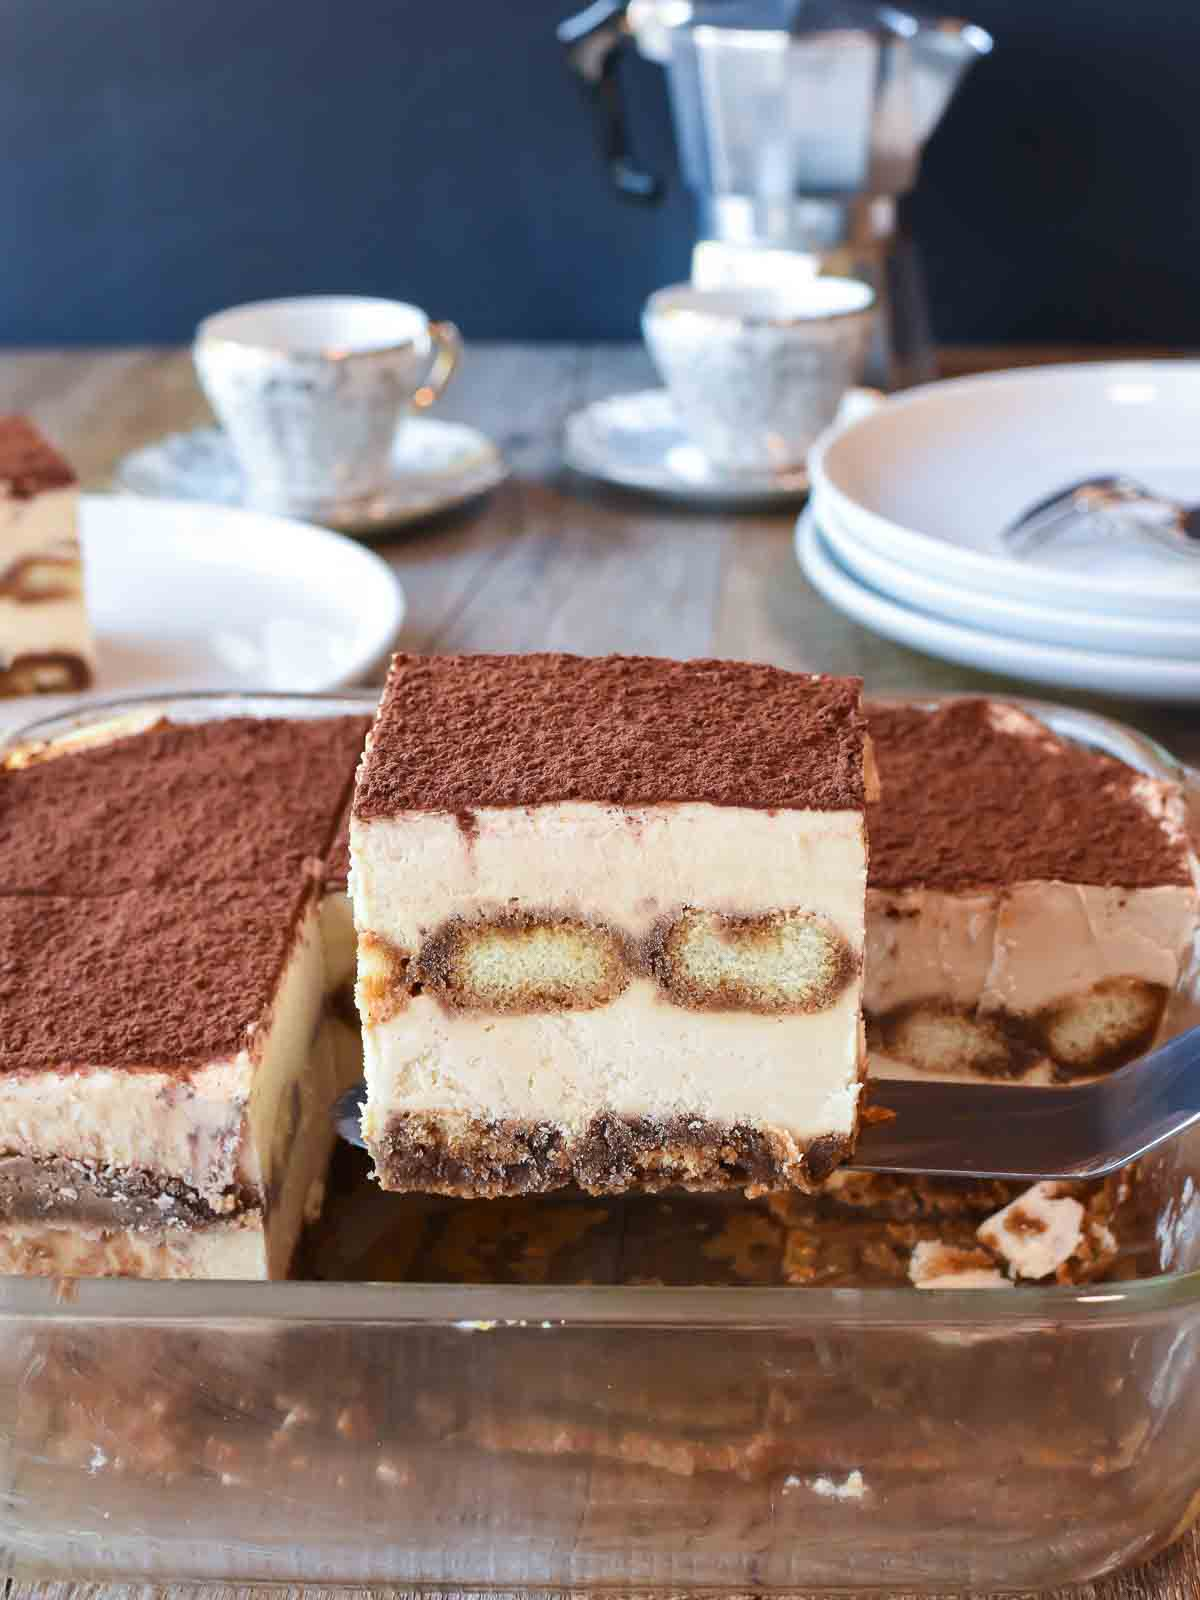 square slice of tiramisu lifted from serving dish